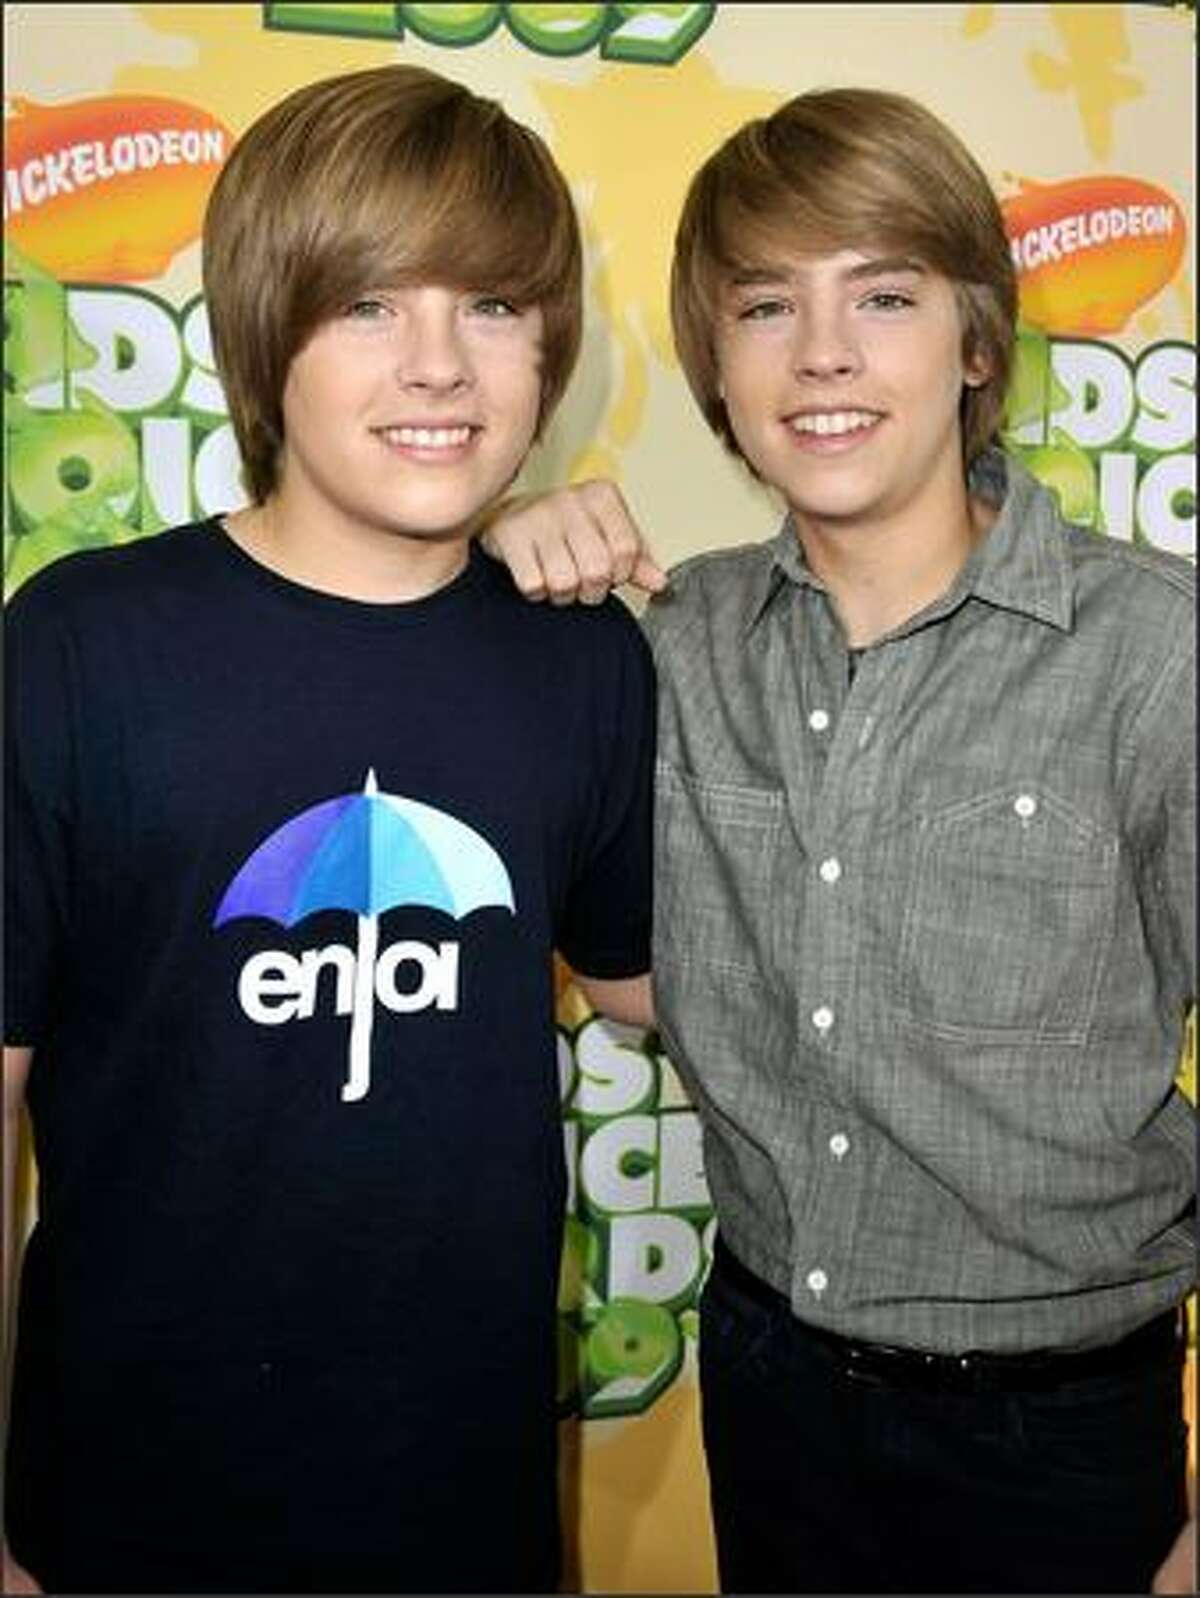 Dylan and Cole Sprouse College: New York University Year: Seniors These twin brothers first rose to fame in the Adam Sandler film Big Daddy. They've since starred in the Disney Channel's The Suite Life of Zack & Cody. The twins are seniors at NYU.